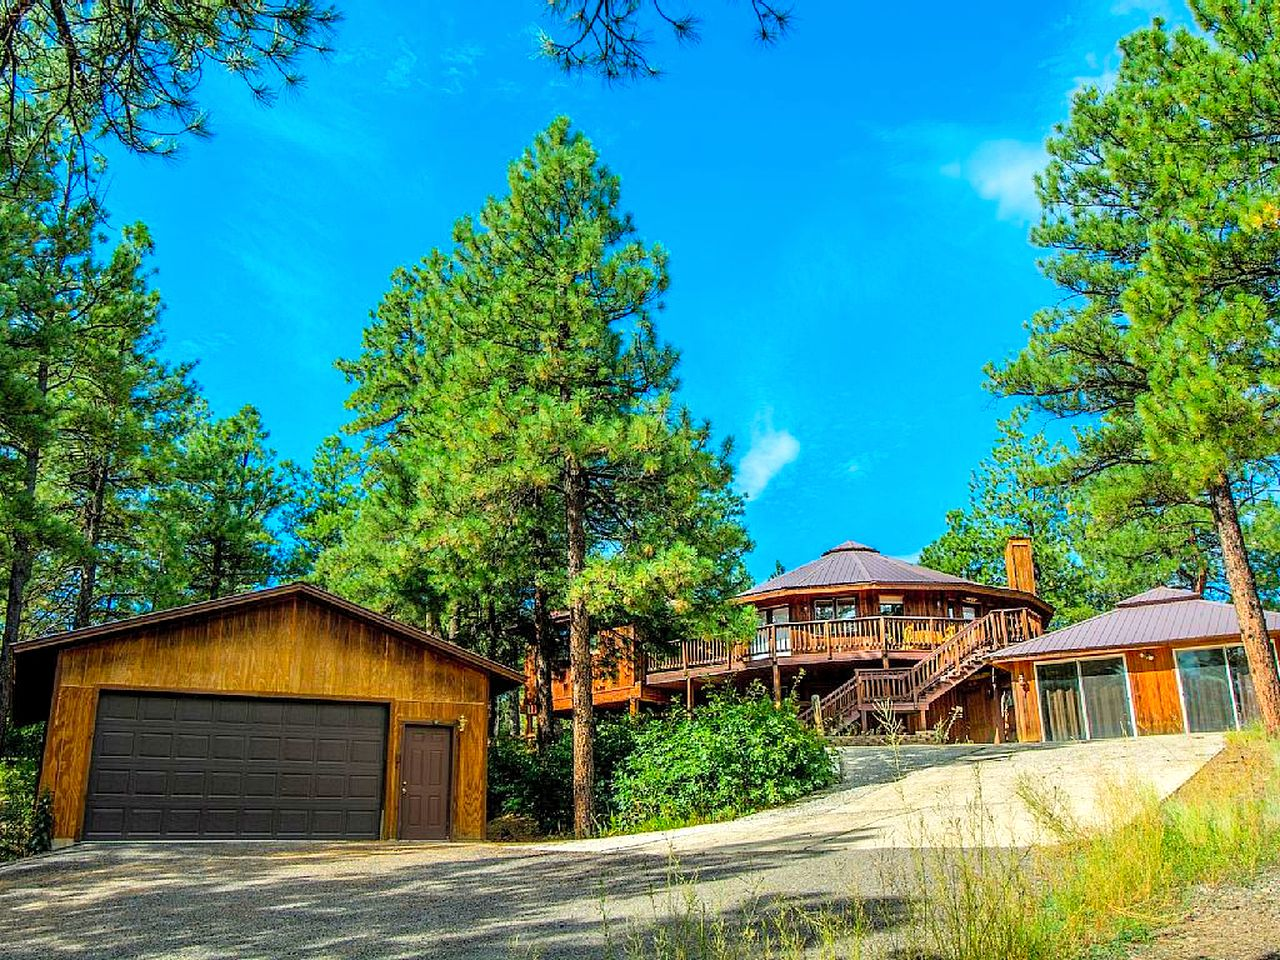 Cabins (Pagosa Springs, Colorado, United States)